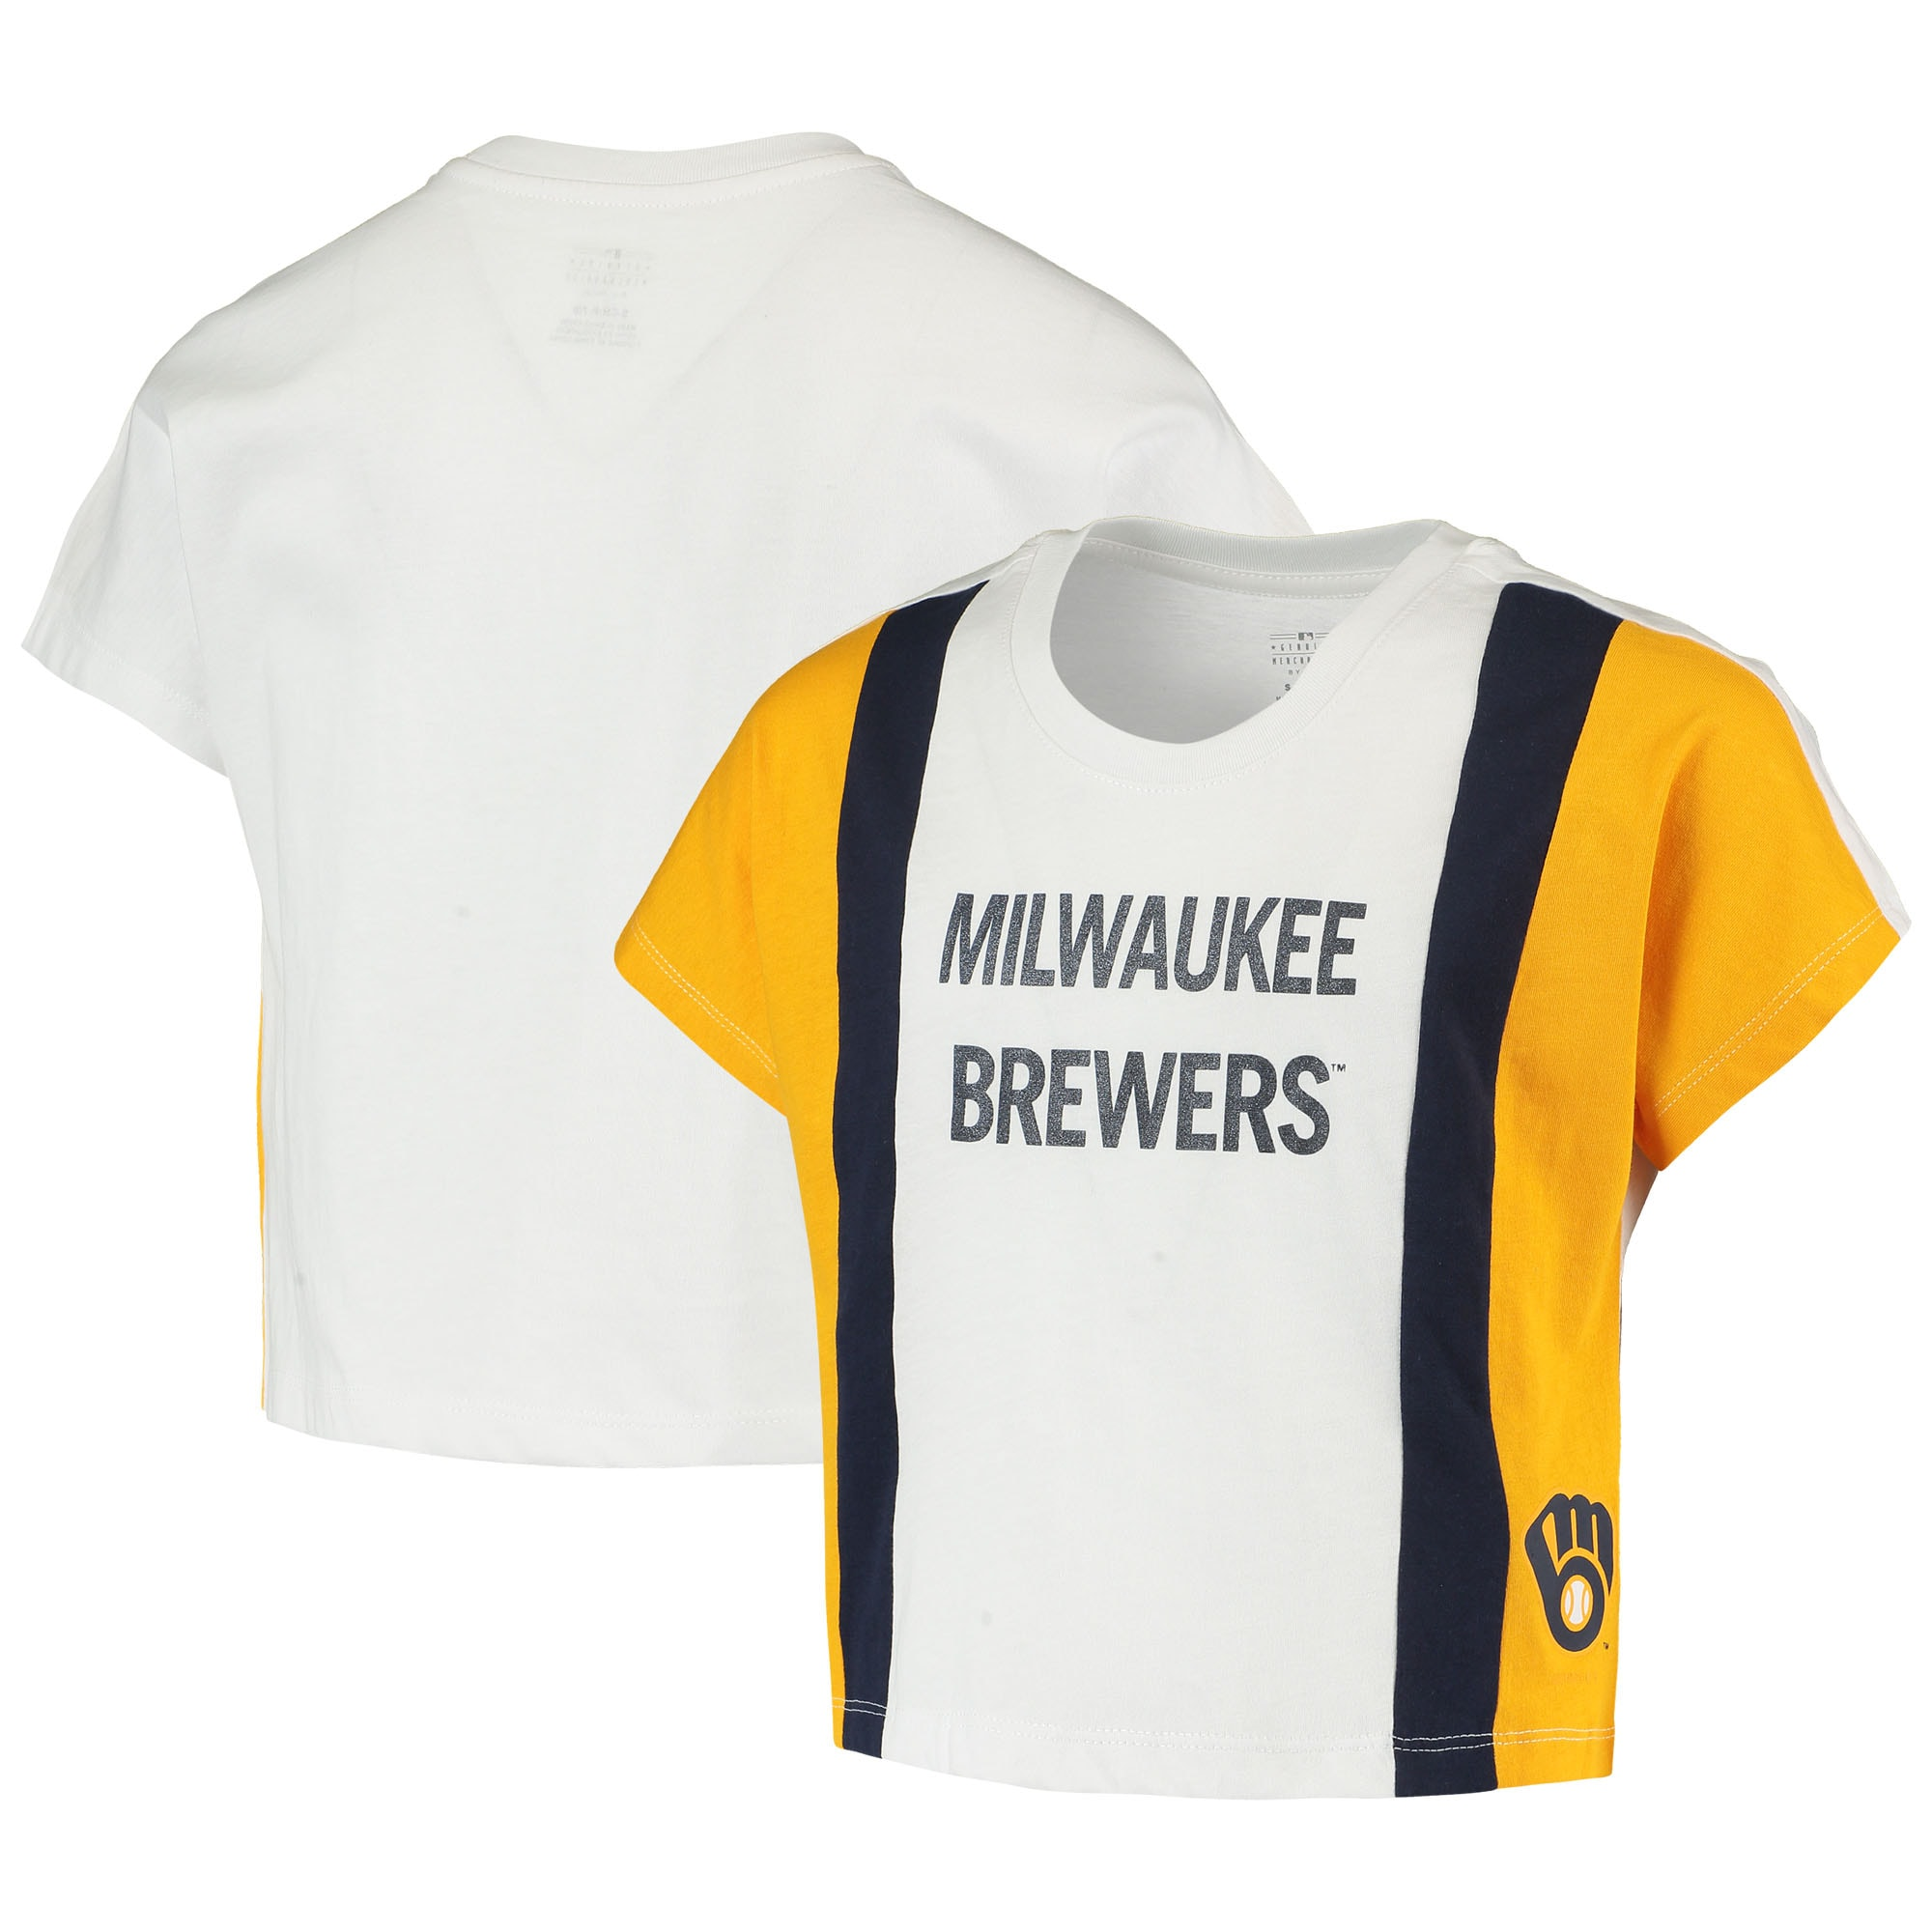 Milwaukee Brewers Girls Youth As If Cropped Boxy T-Shirt - White/Gold